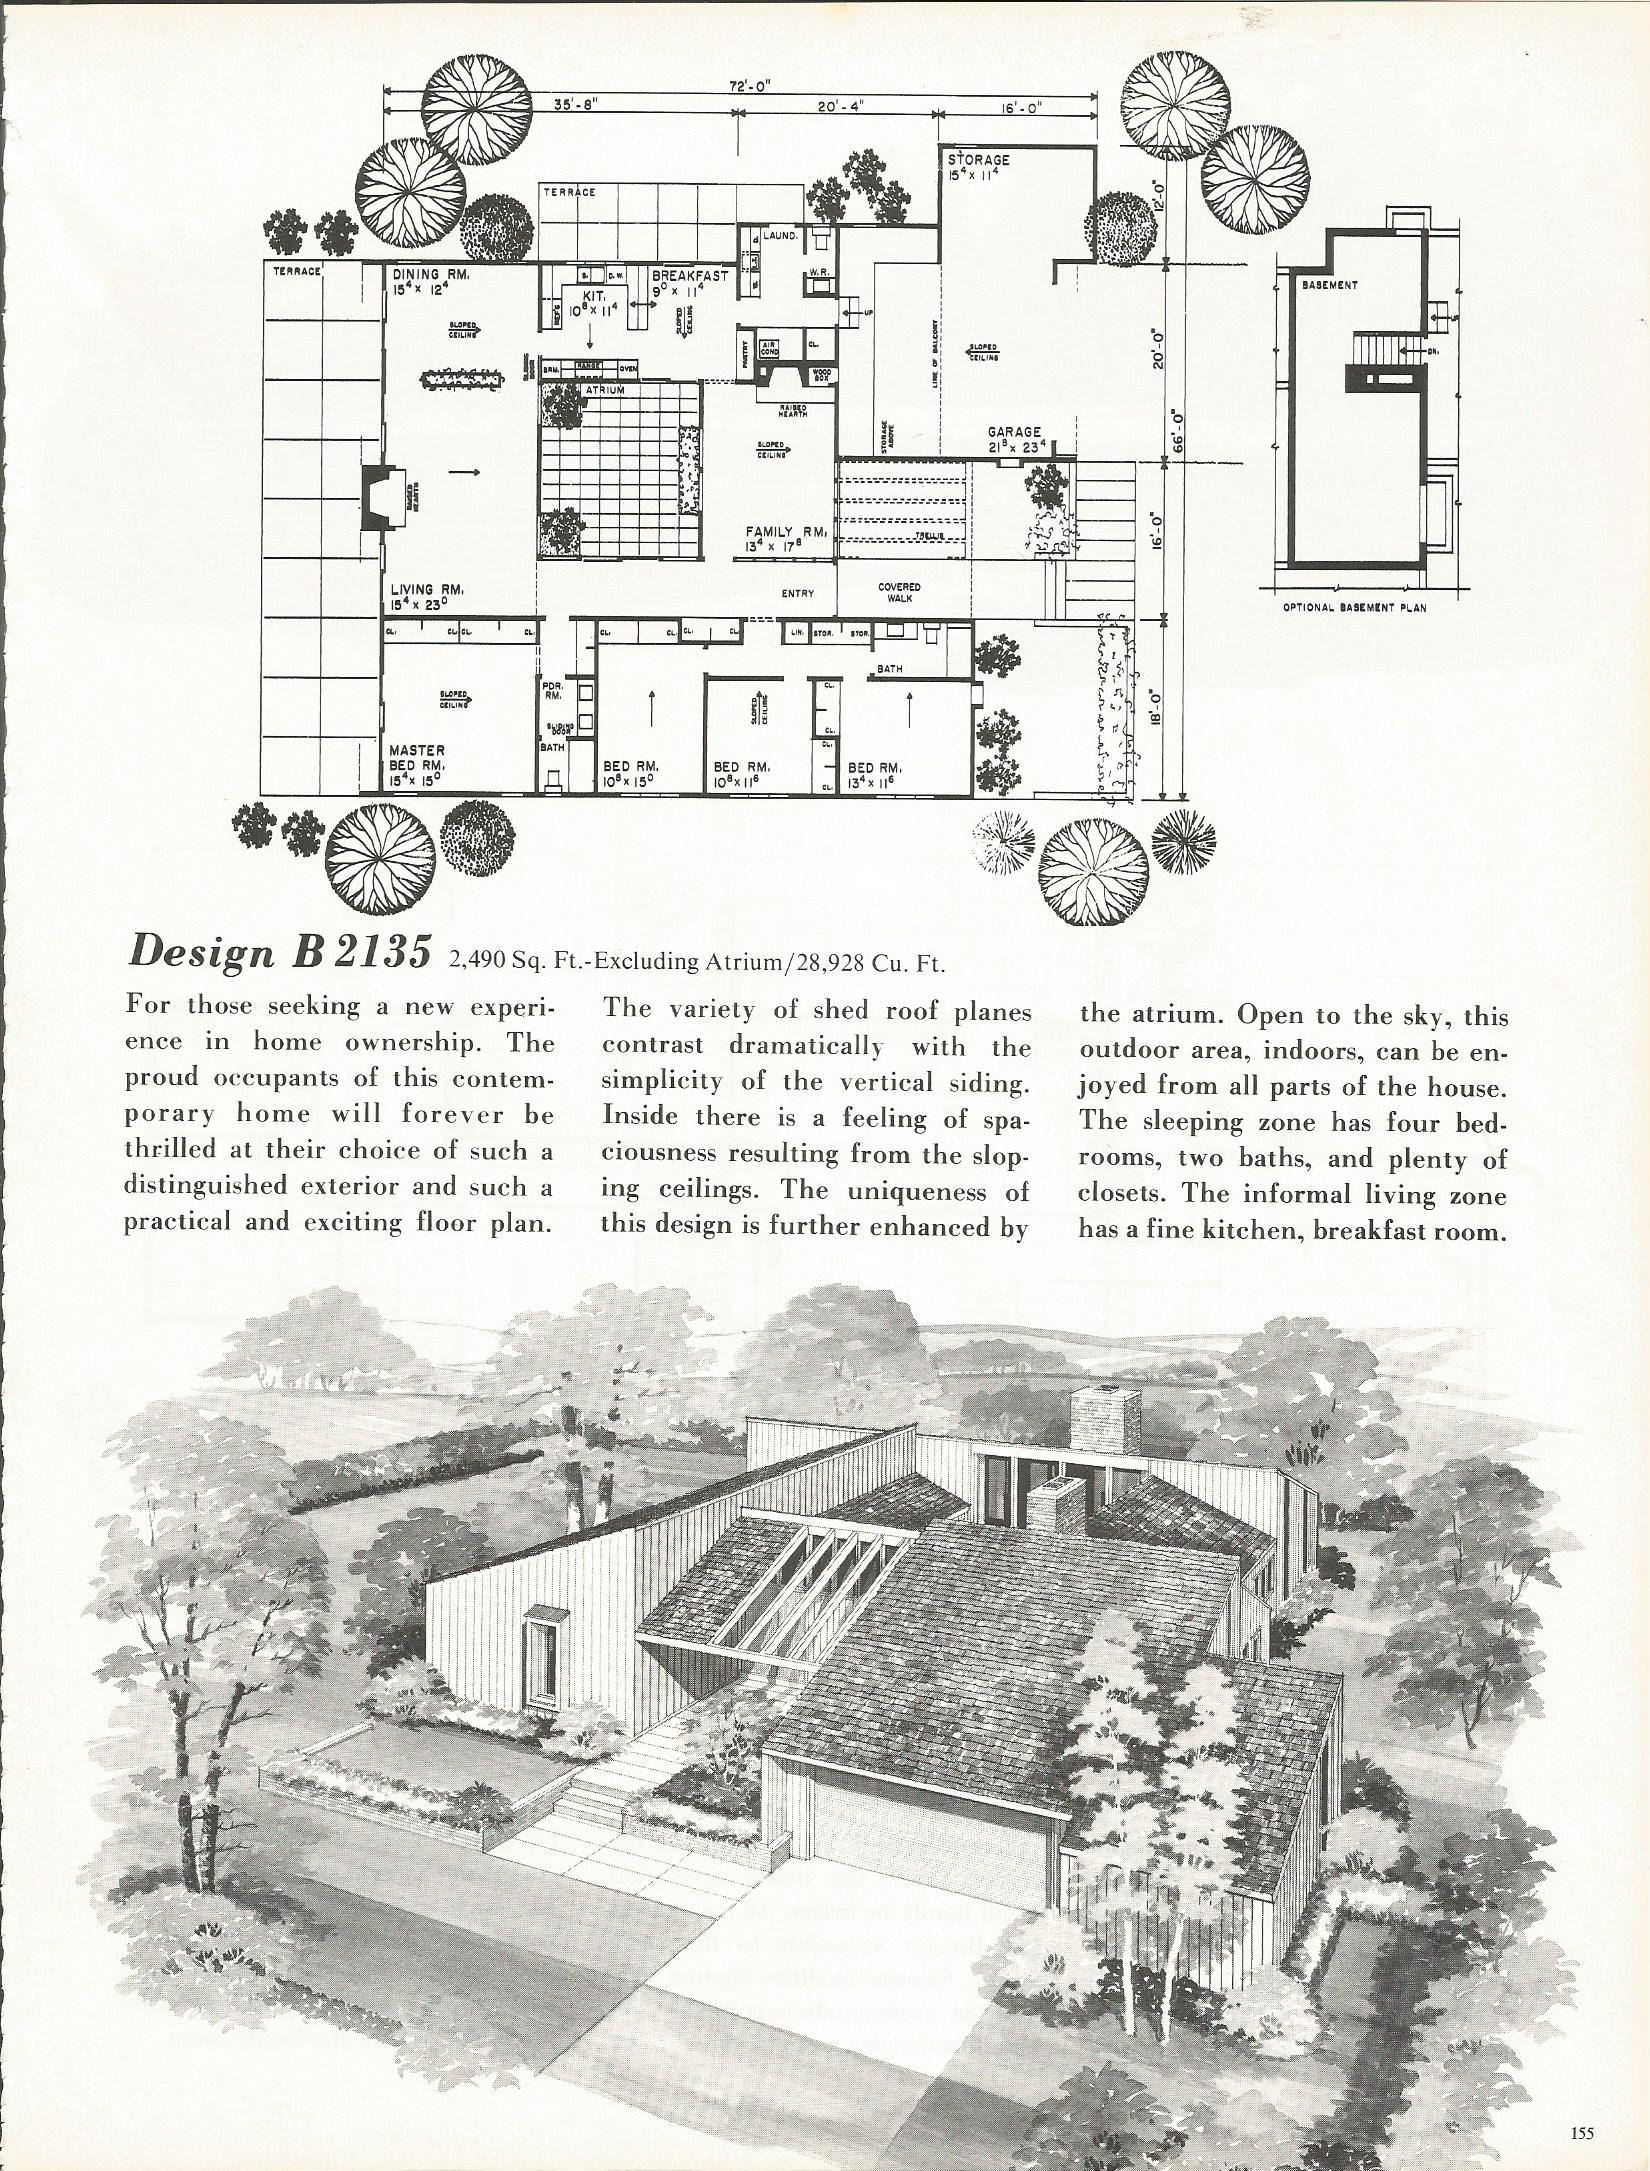 Vintage house plans 2135 antique alter ego for New house plans 2014